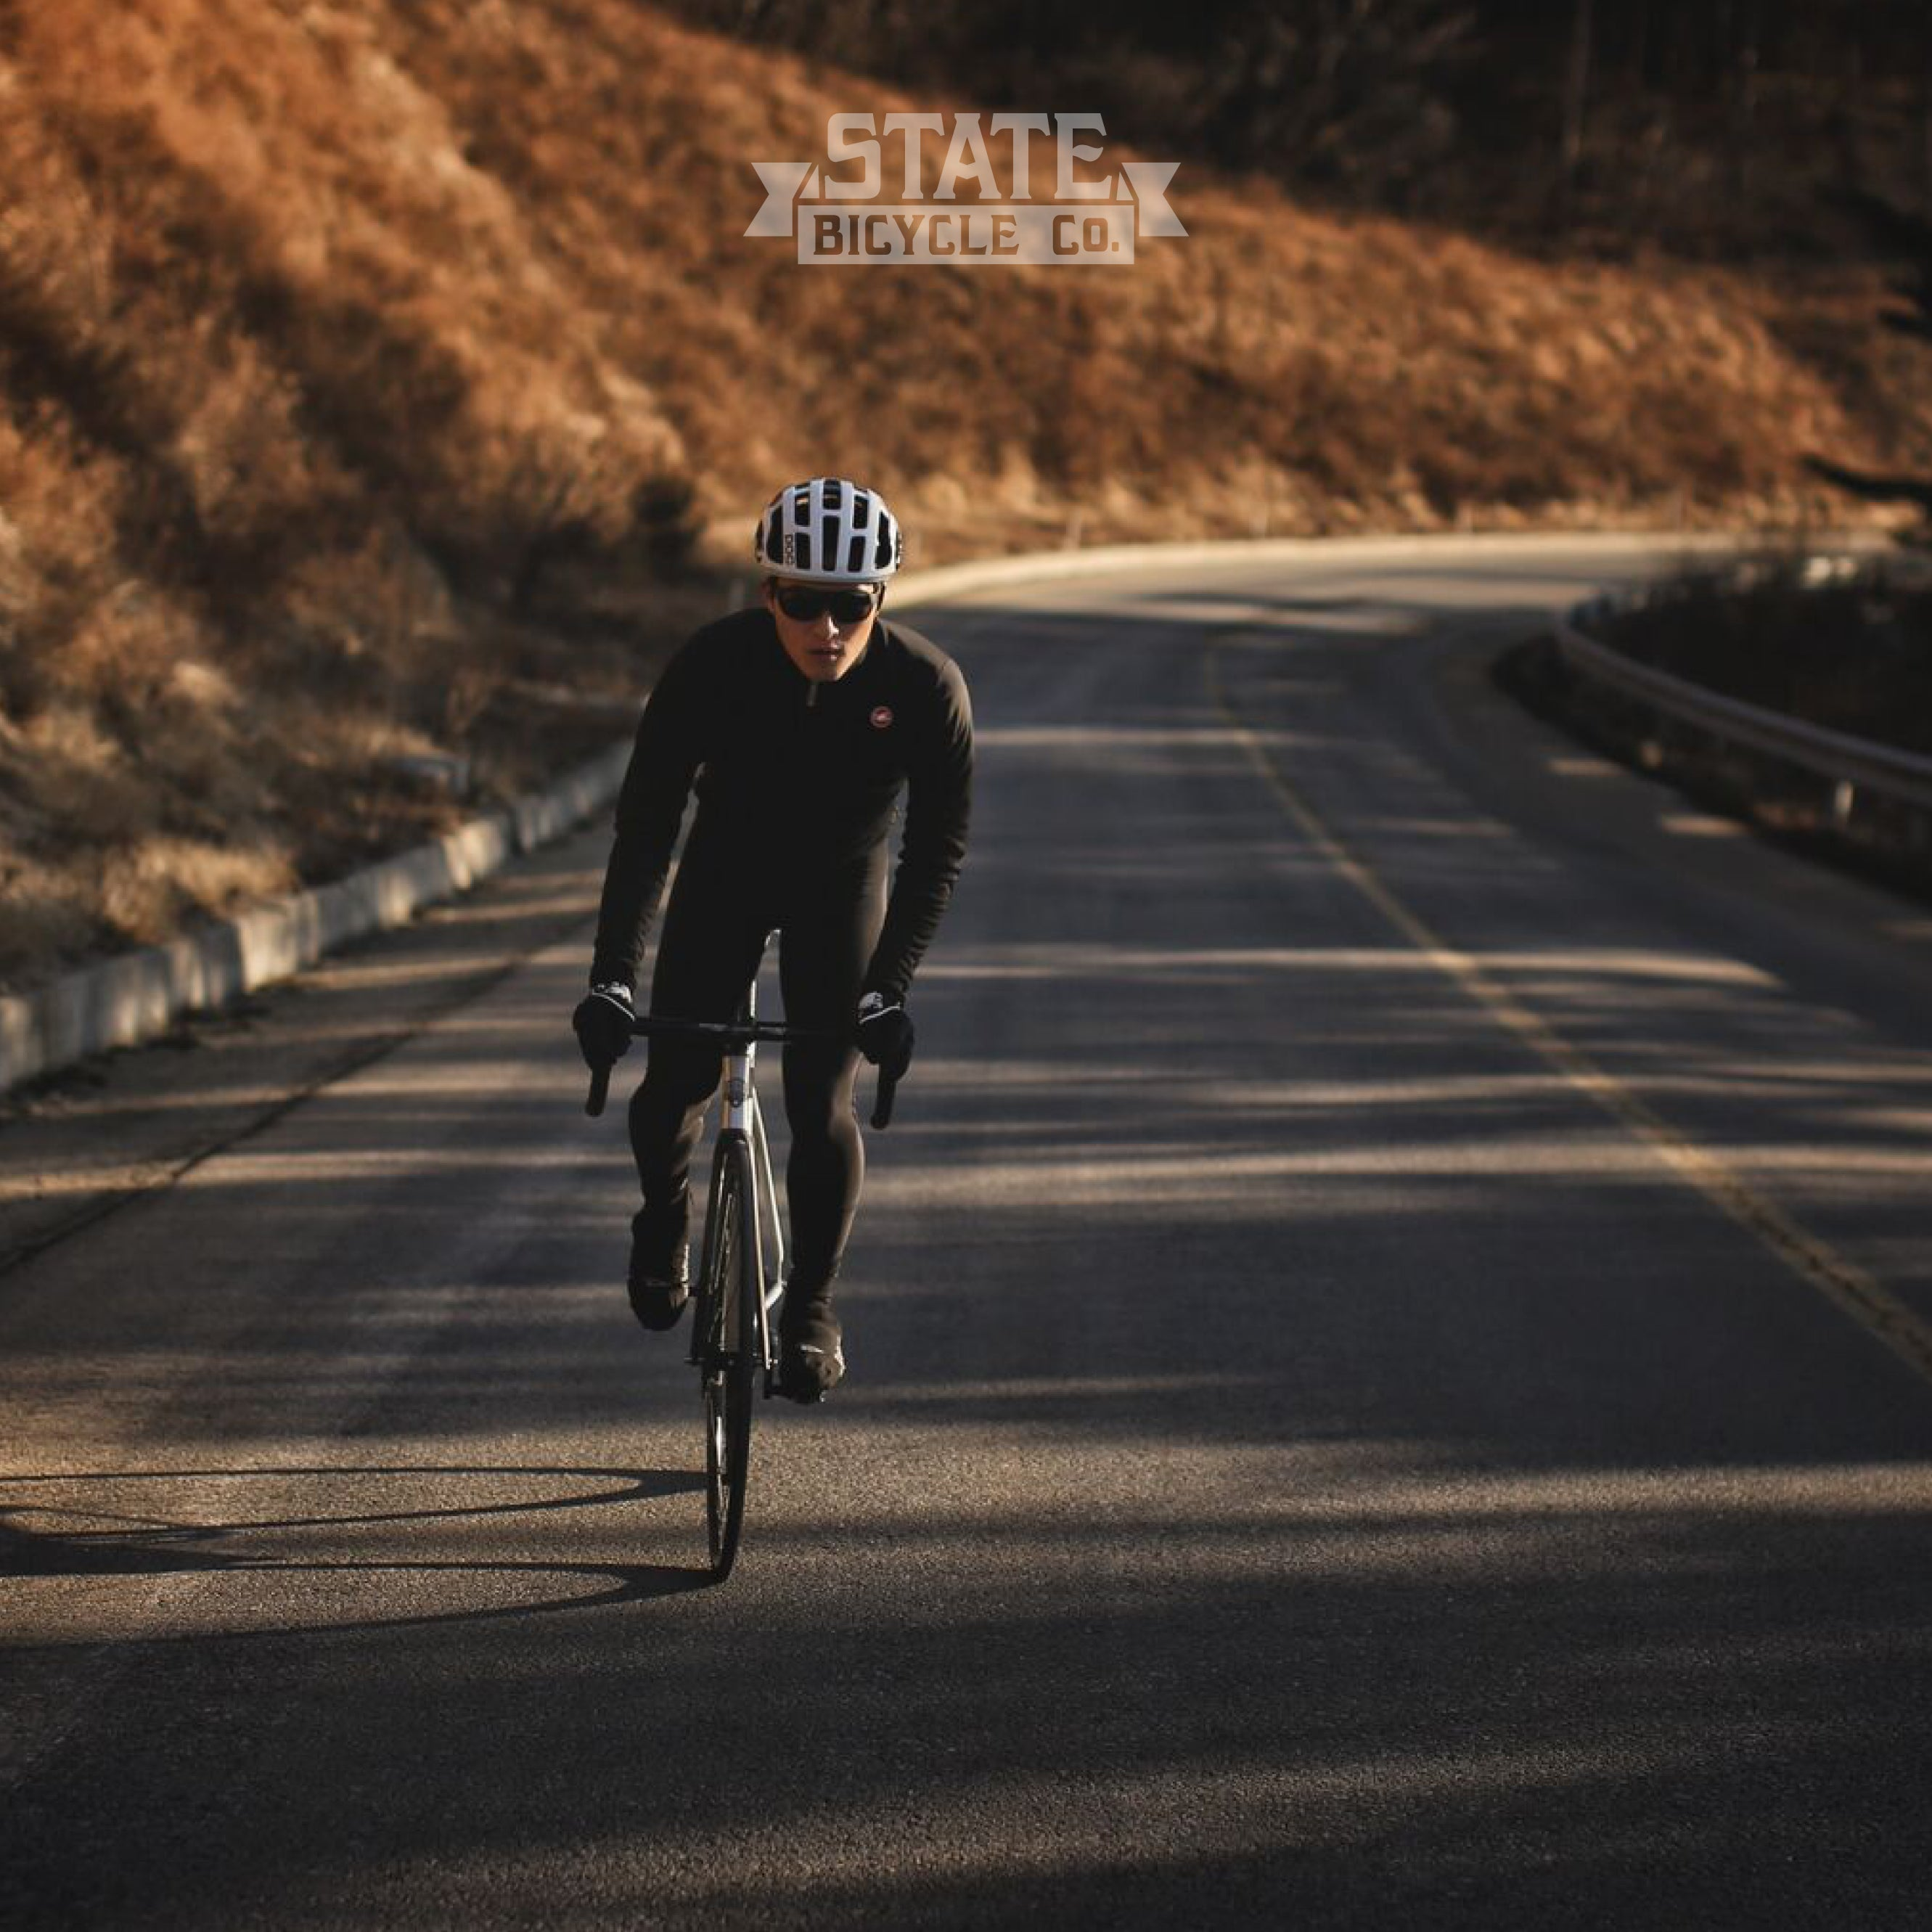 Monthly Wallpaper November 2015 State Bicycle Co